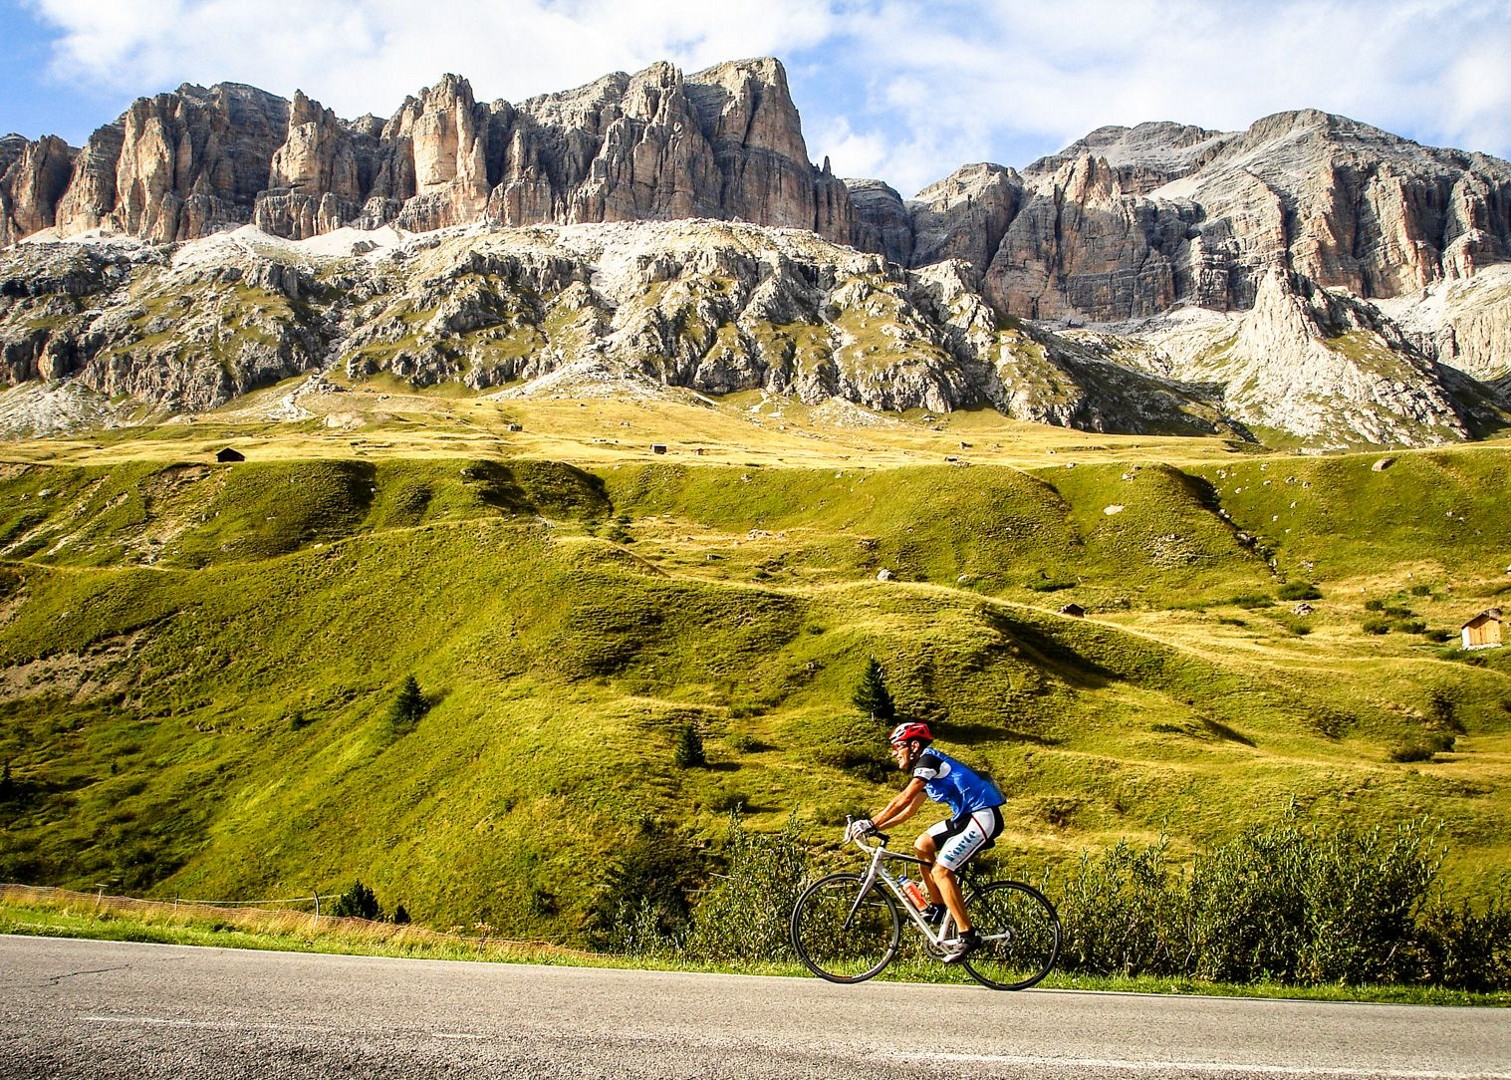 Droad-cycling-cols-of-italy-switzerland-and-france.jpg - Italy - Dolomiti Discoverer - Guided Road Cycling Holiday - Road Cycling